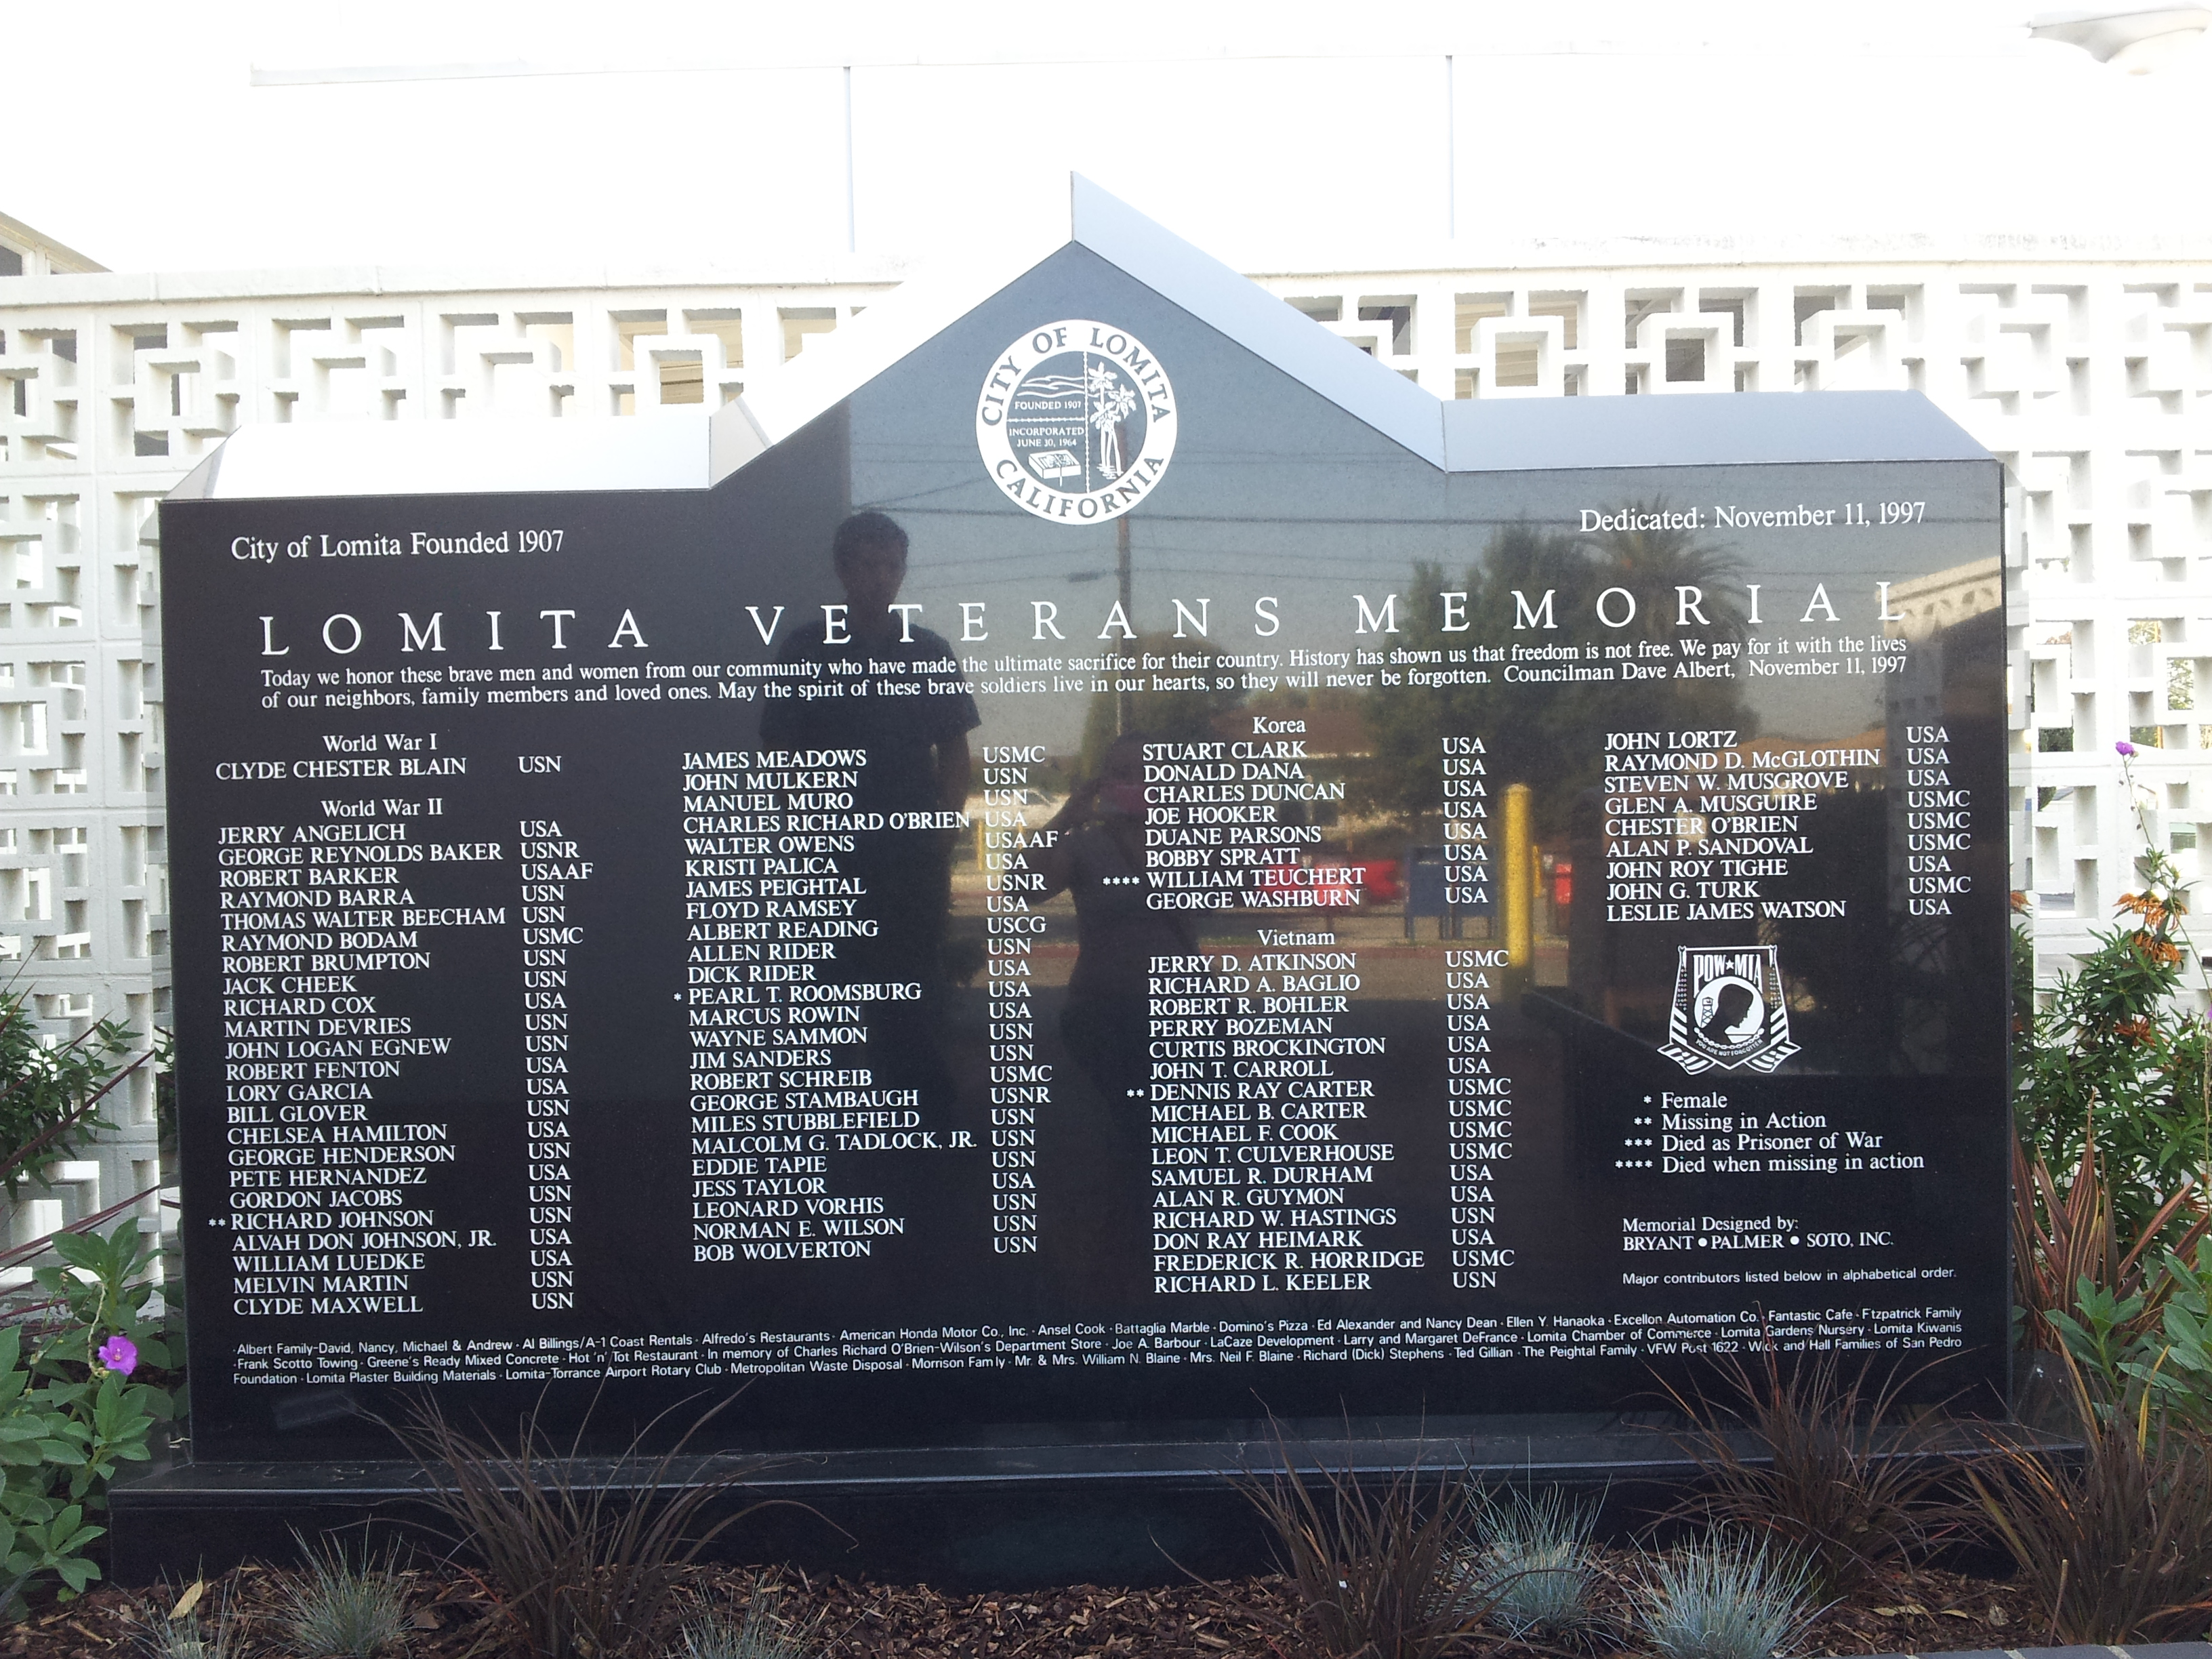 Lomita Veterans Memorial